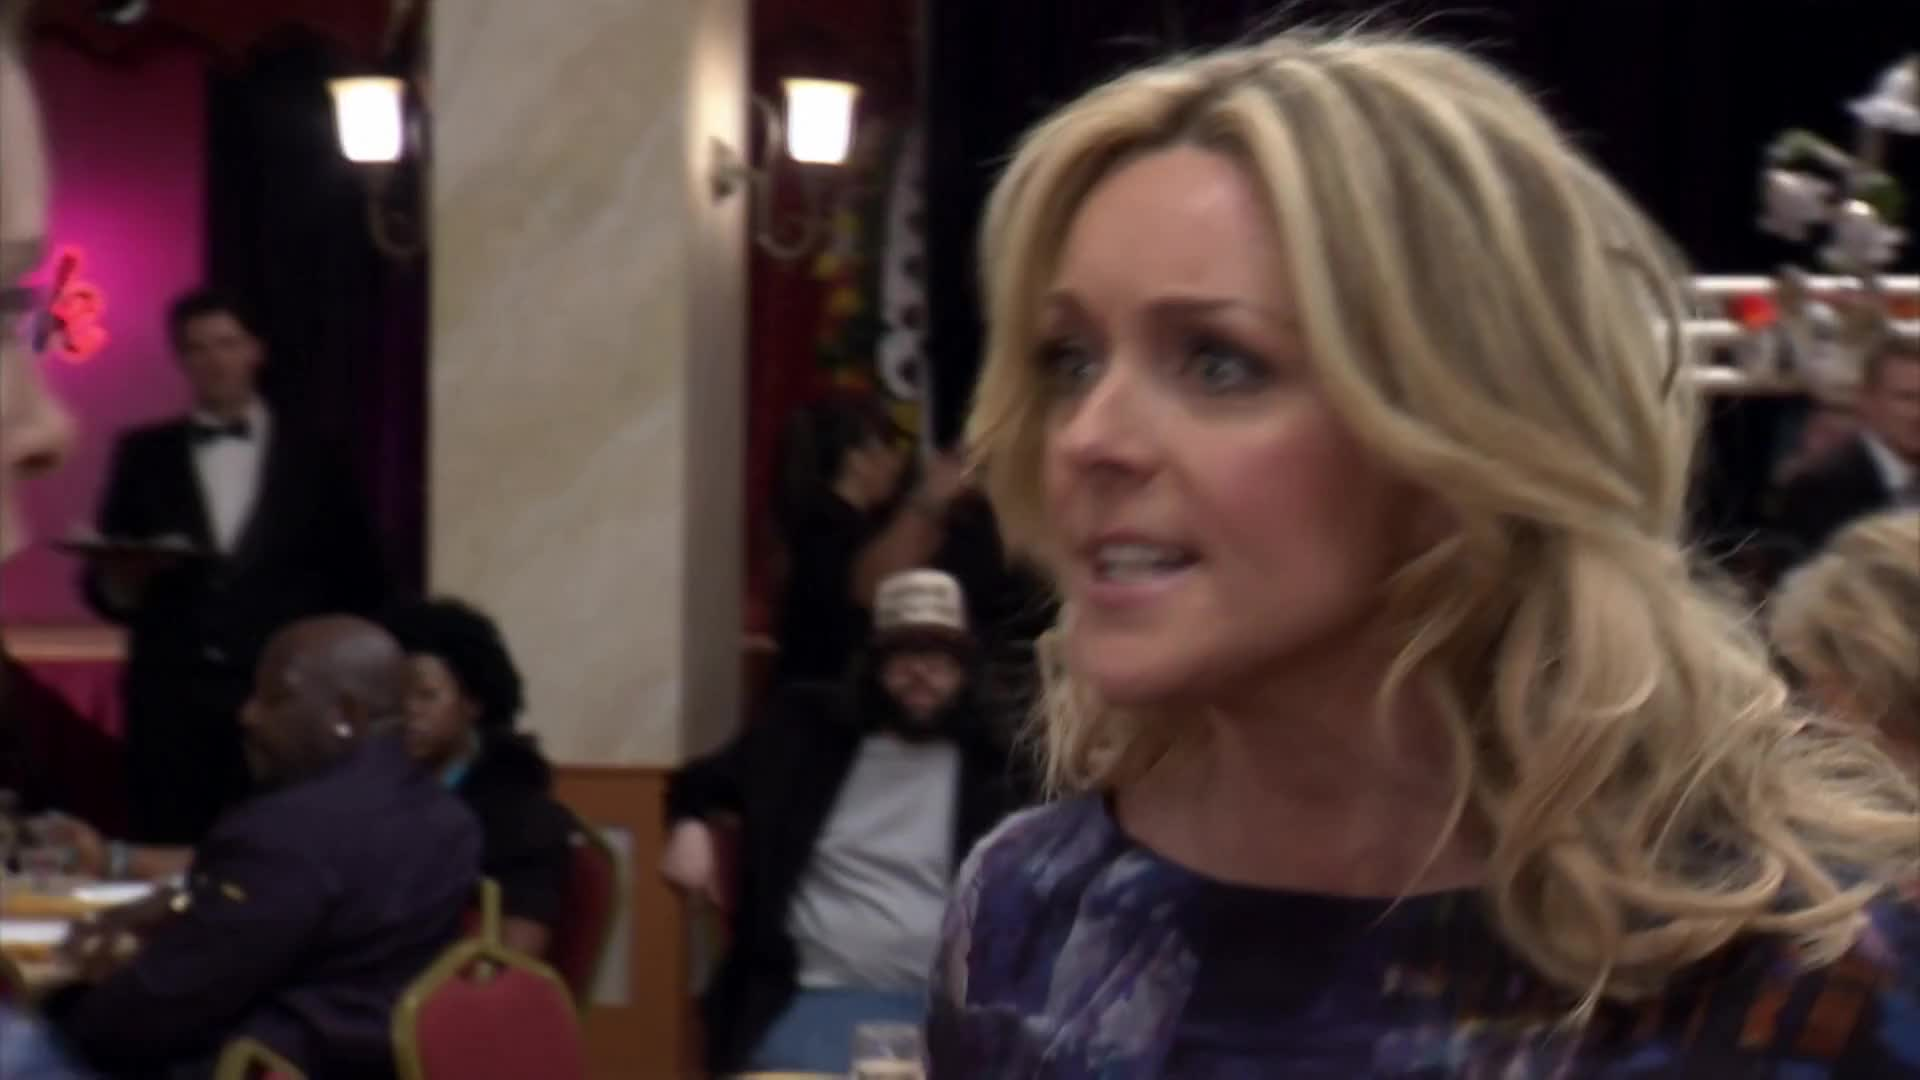 30 ROCK, Jane, Jenna, Jordan, Krakowski, Maroney, Queen, S06E20, celebs, class, have, jane krakowski, not, of, prostitution, whore, you, You have no class! You prostitution whore! GIFs